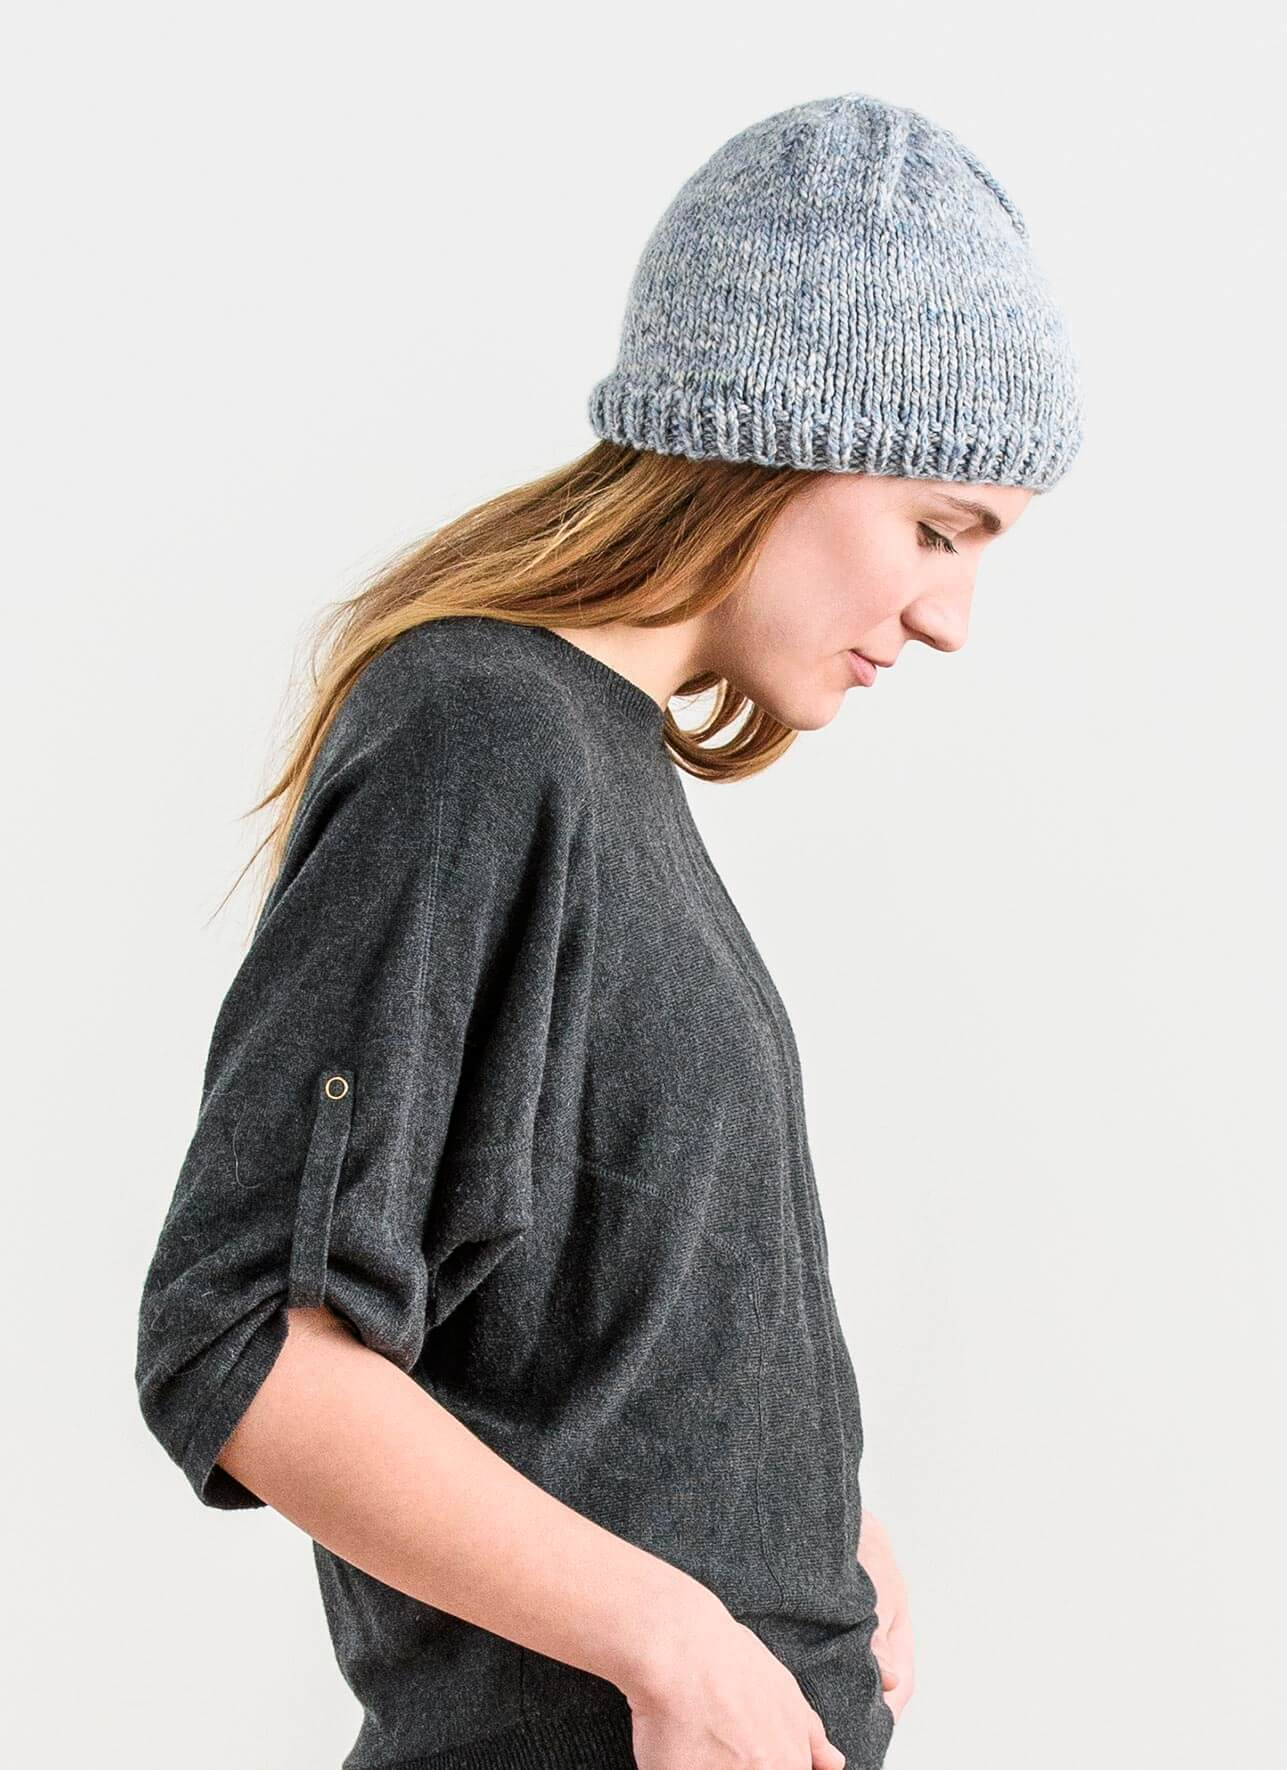 Blue Sky Knitkit - East Bethel Hat